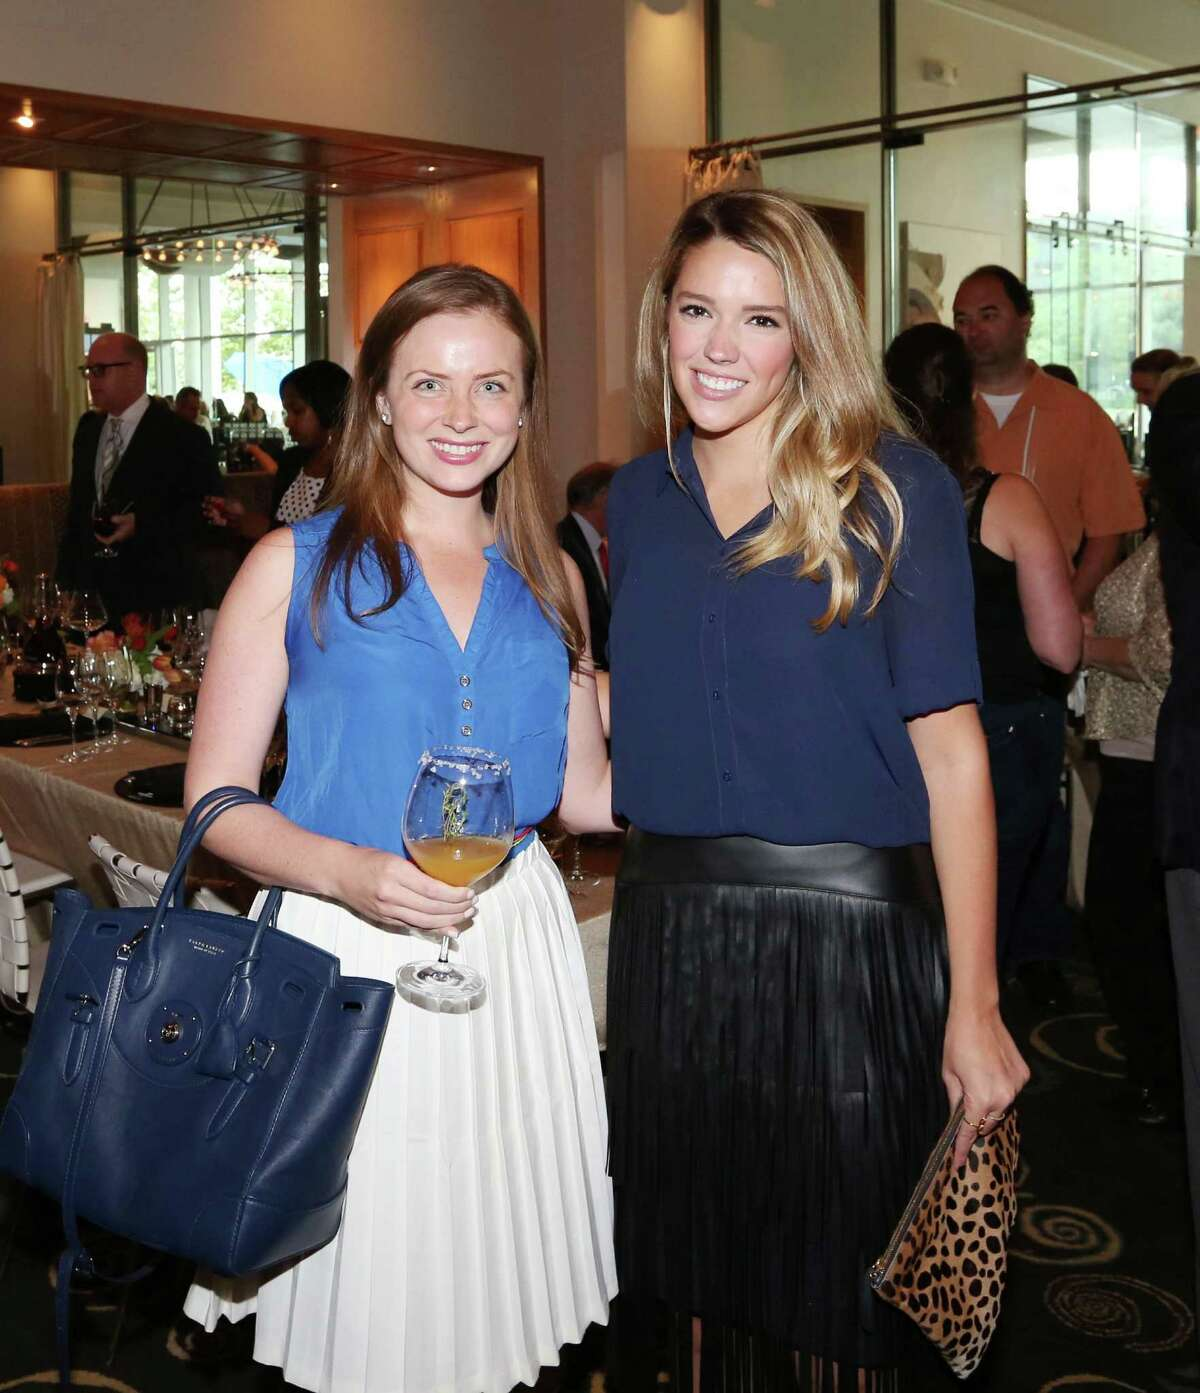 Anne Lee Phillips and Anna Schuster at a five-course Grand Marnier paring at Caracol.